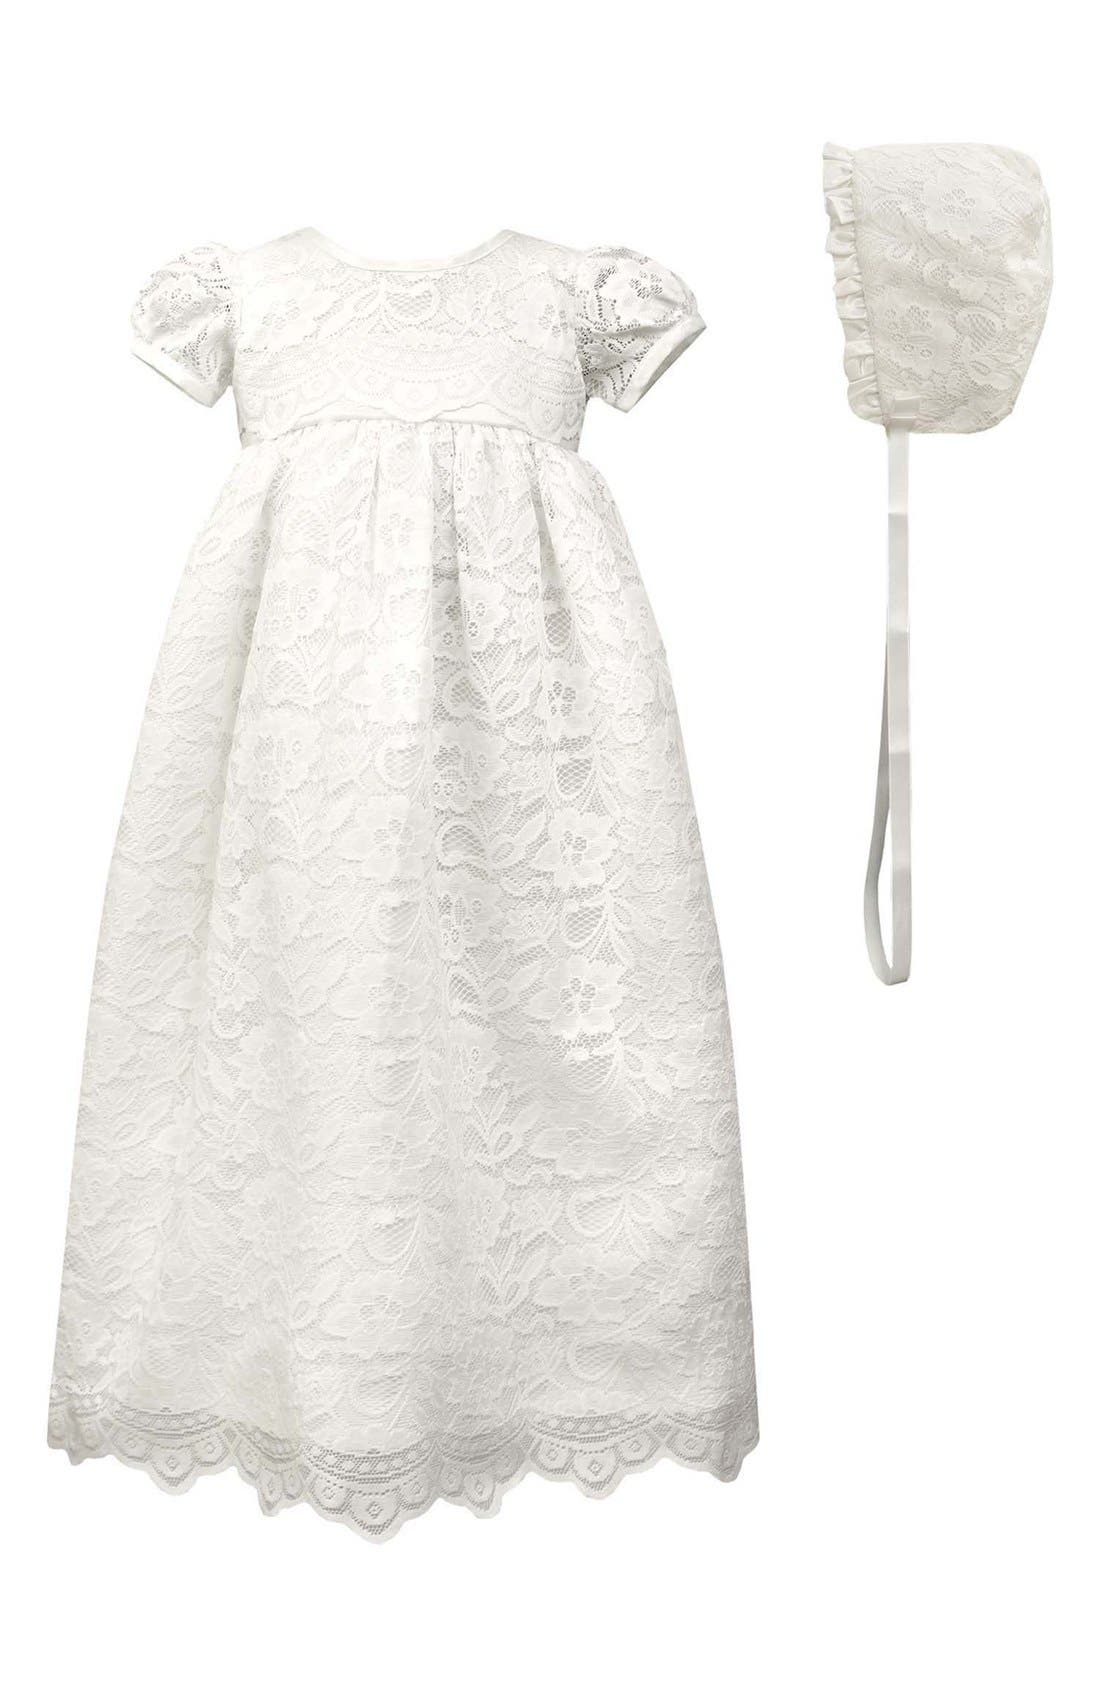 C.I. CASTRO & CO., Scalloped Lace Christening Gown & Bonnet, Main thumbnail 1, color, WHITE